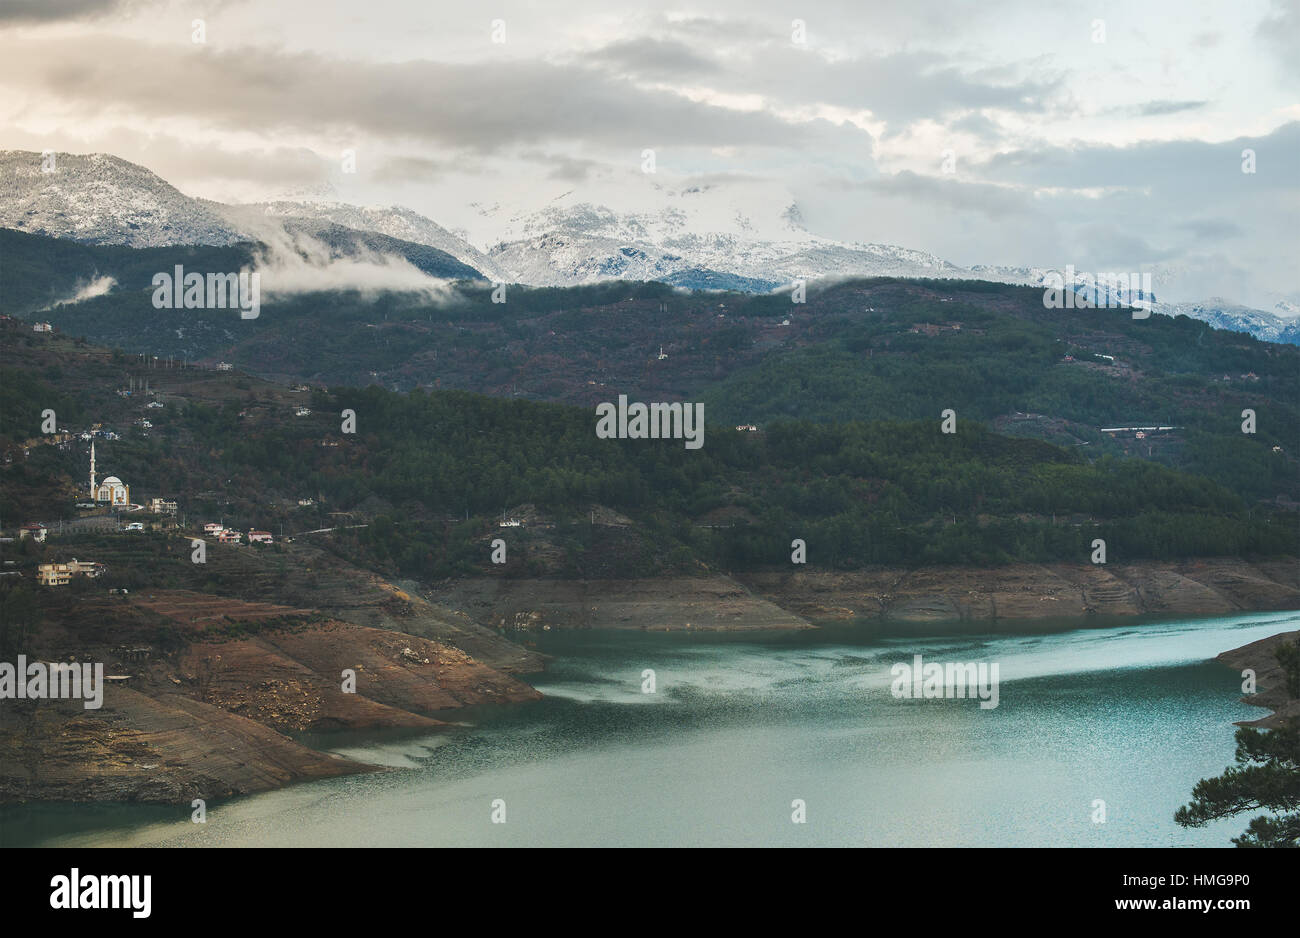 Dim Cay storage pond in the mountain area of Alanya, Southern Turkey - Stock Image